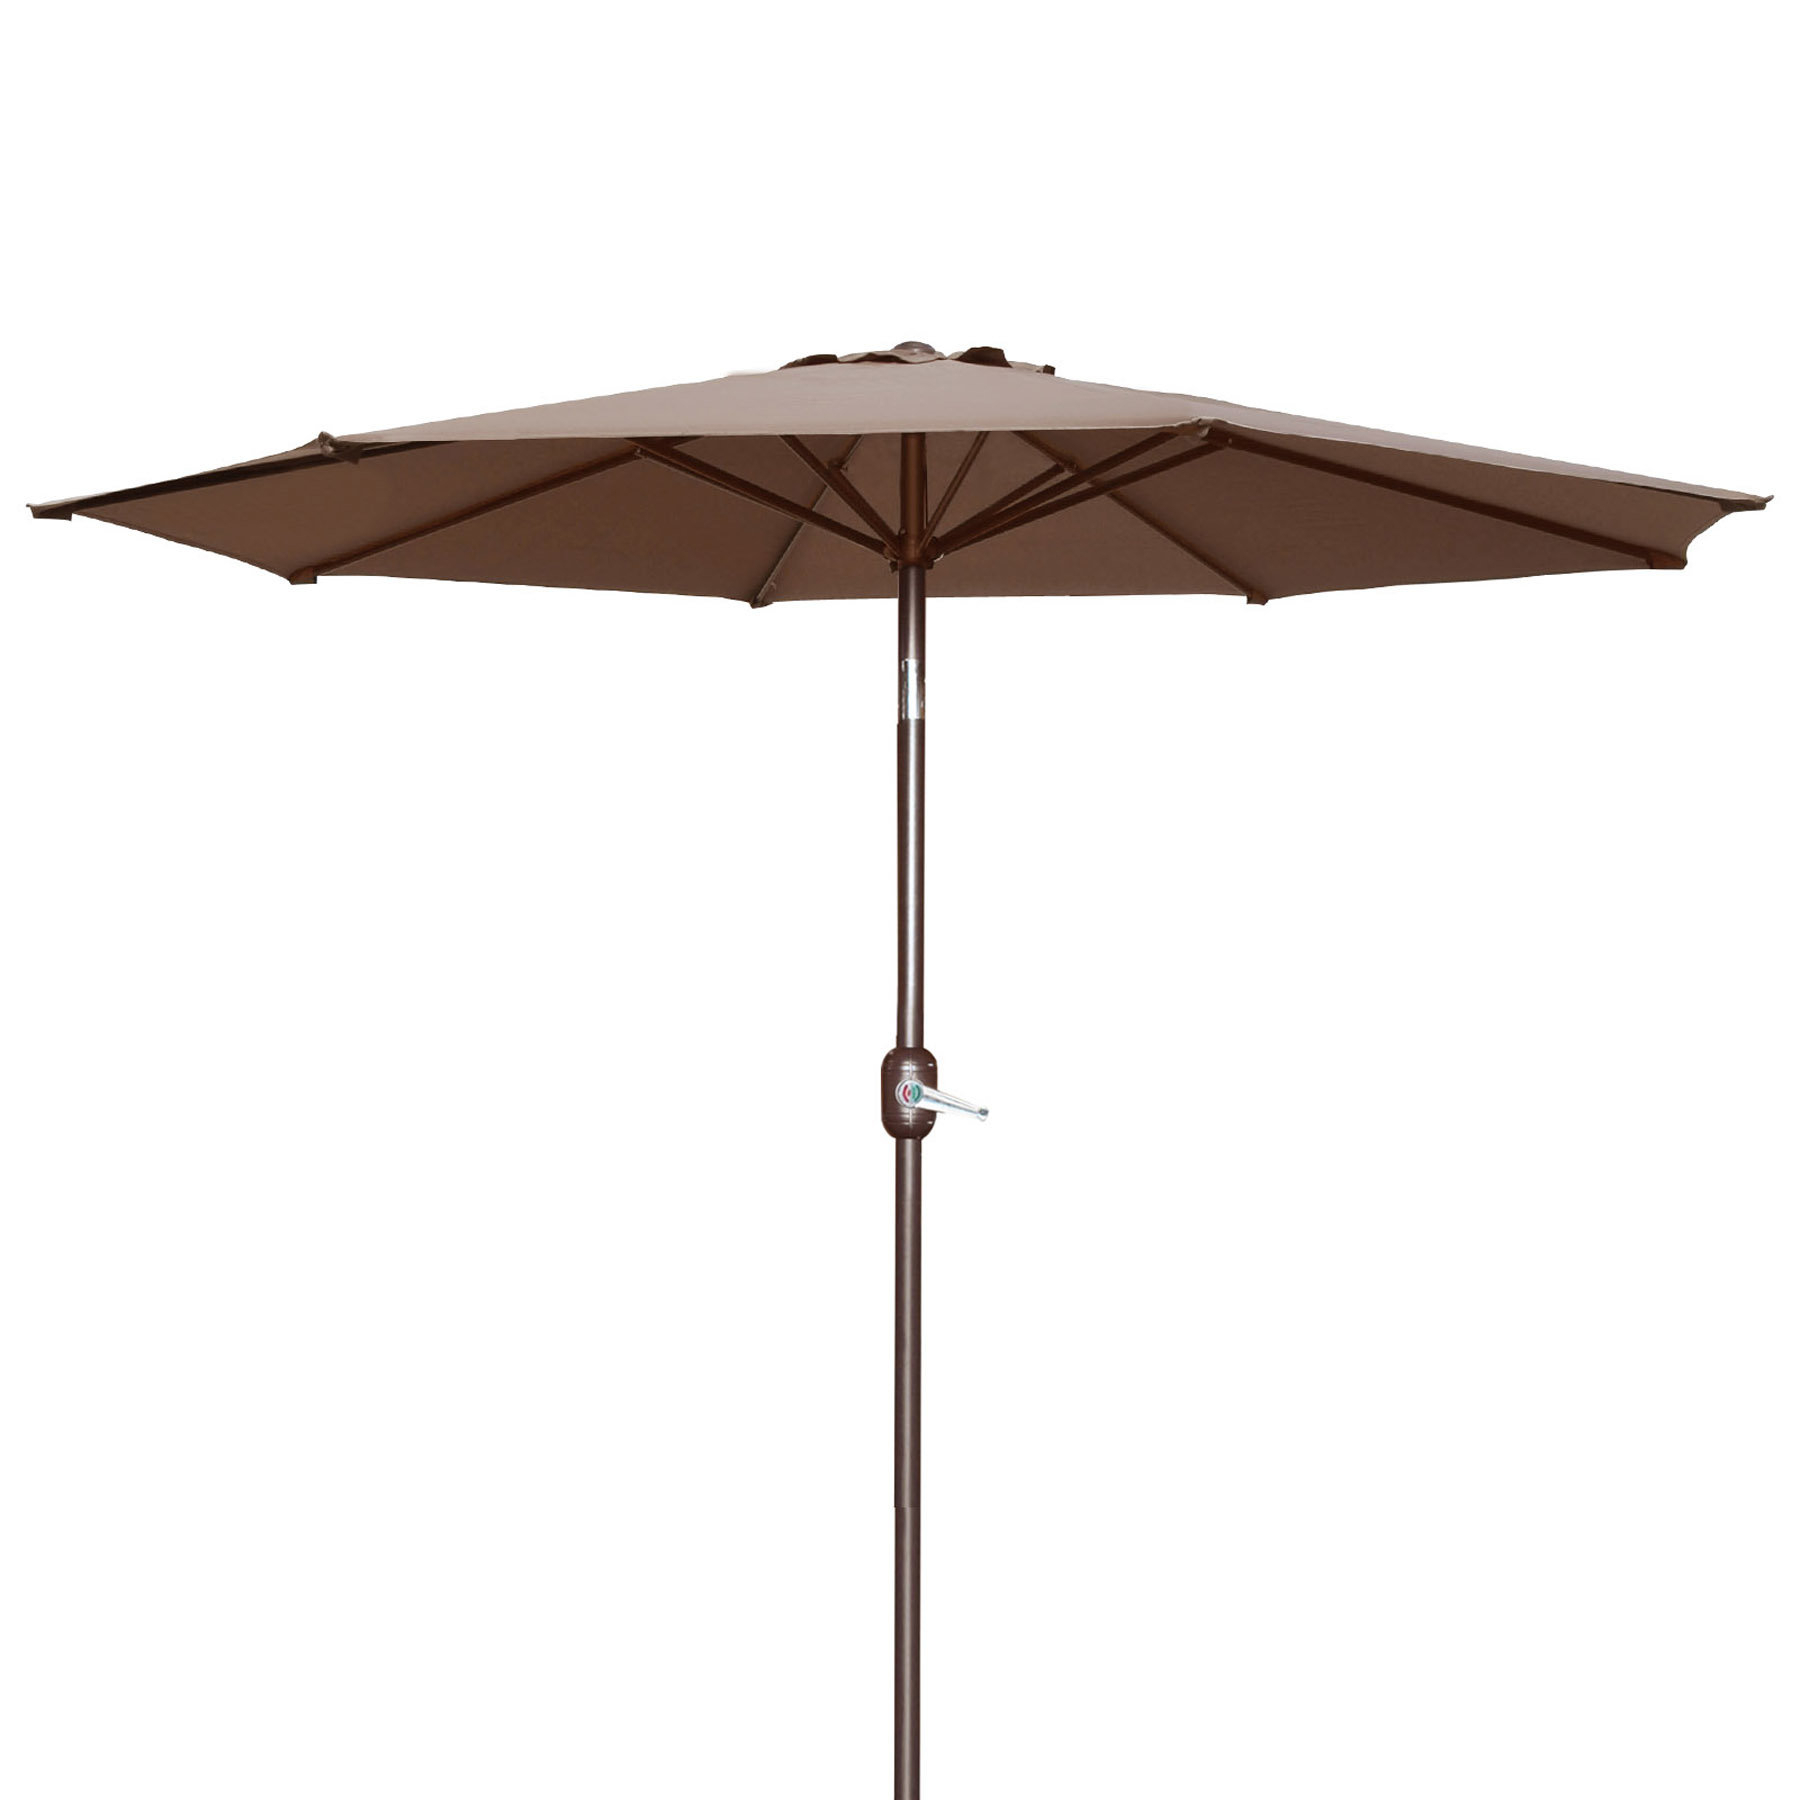 Best And Newest Wallach Market Sunbrella Umbrellas With Regard To Milligan Hexagonal Outdoor Garden Patio Market Umbrella (Gallery 13 of 20)